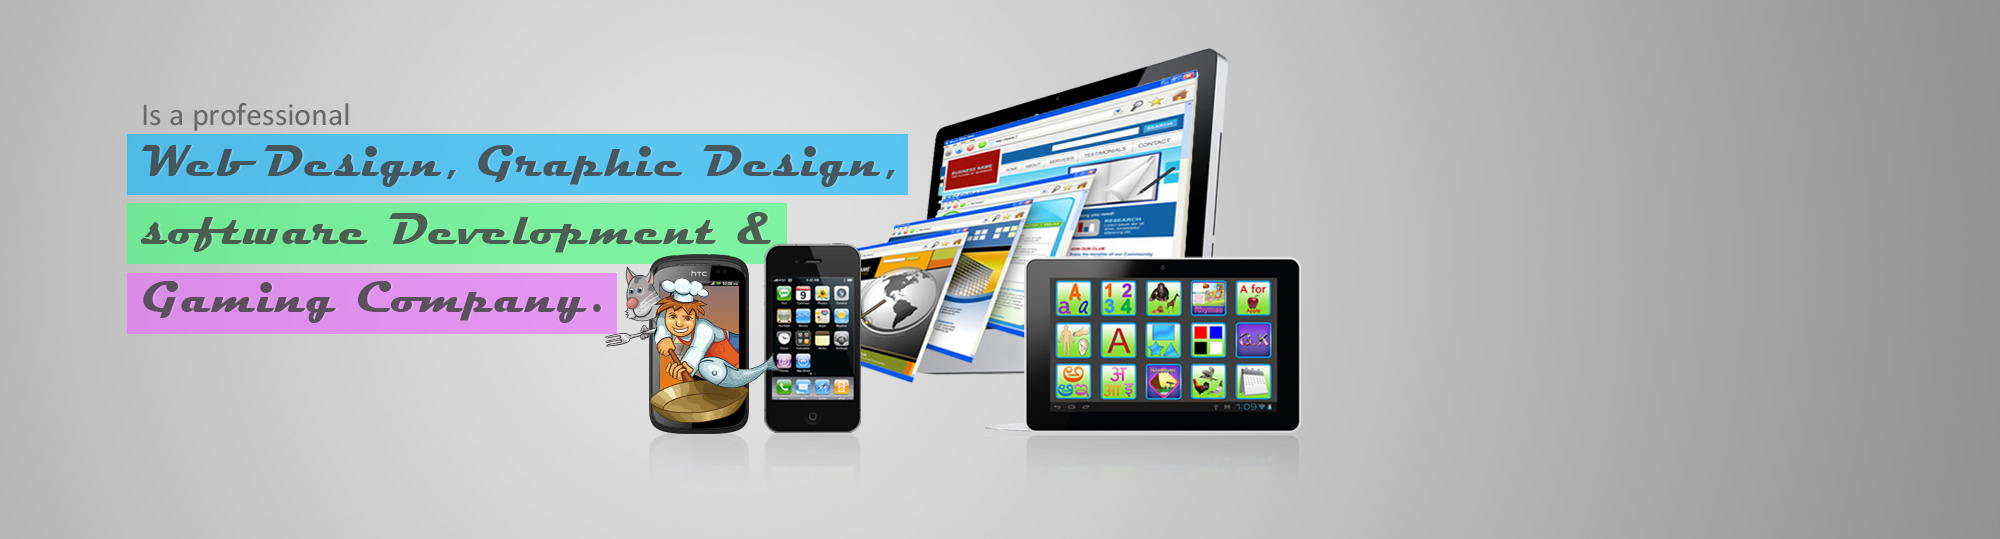 iphone application development companies in hyderabad